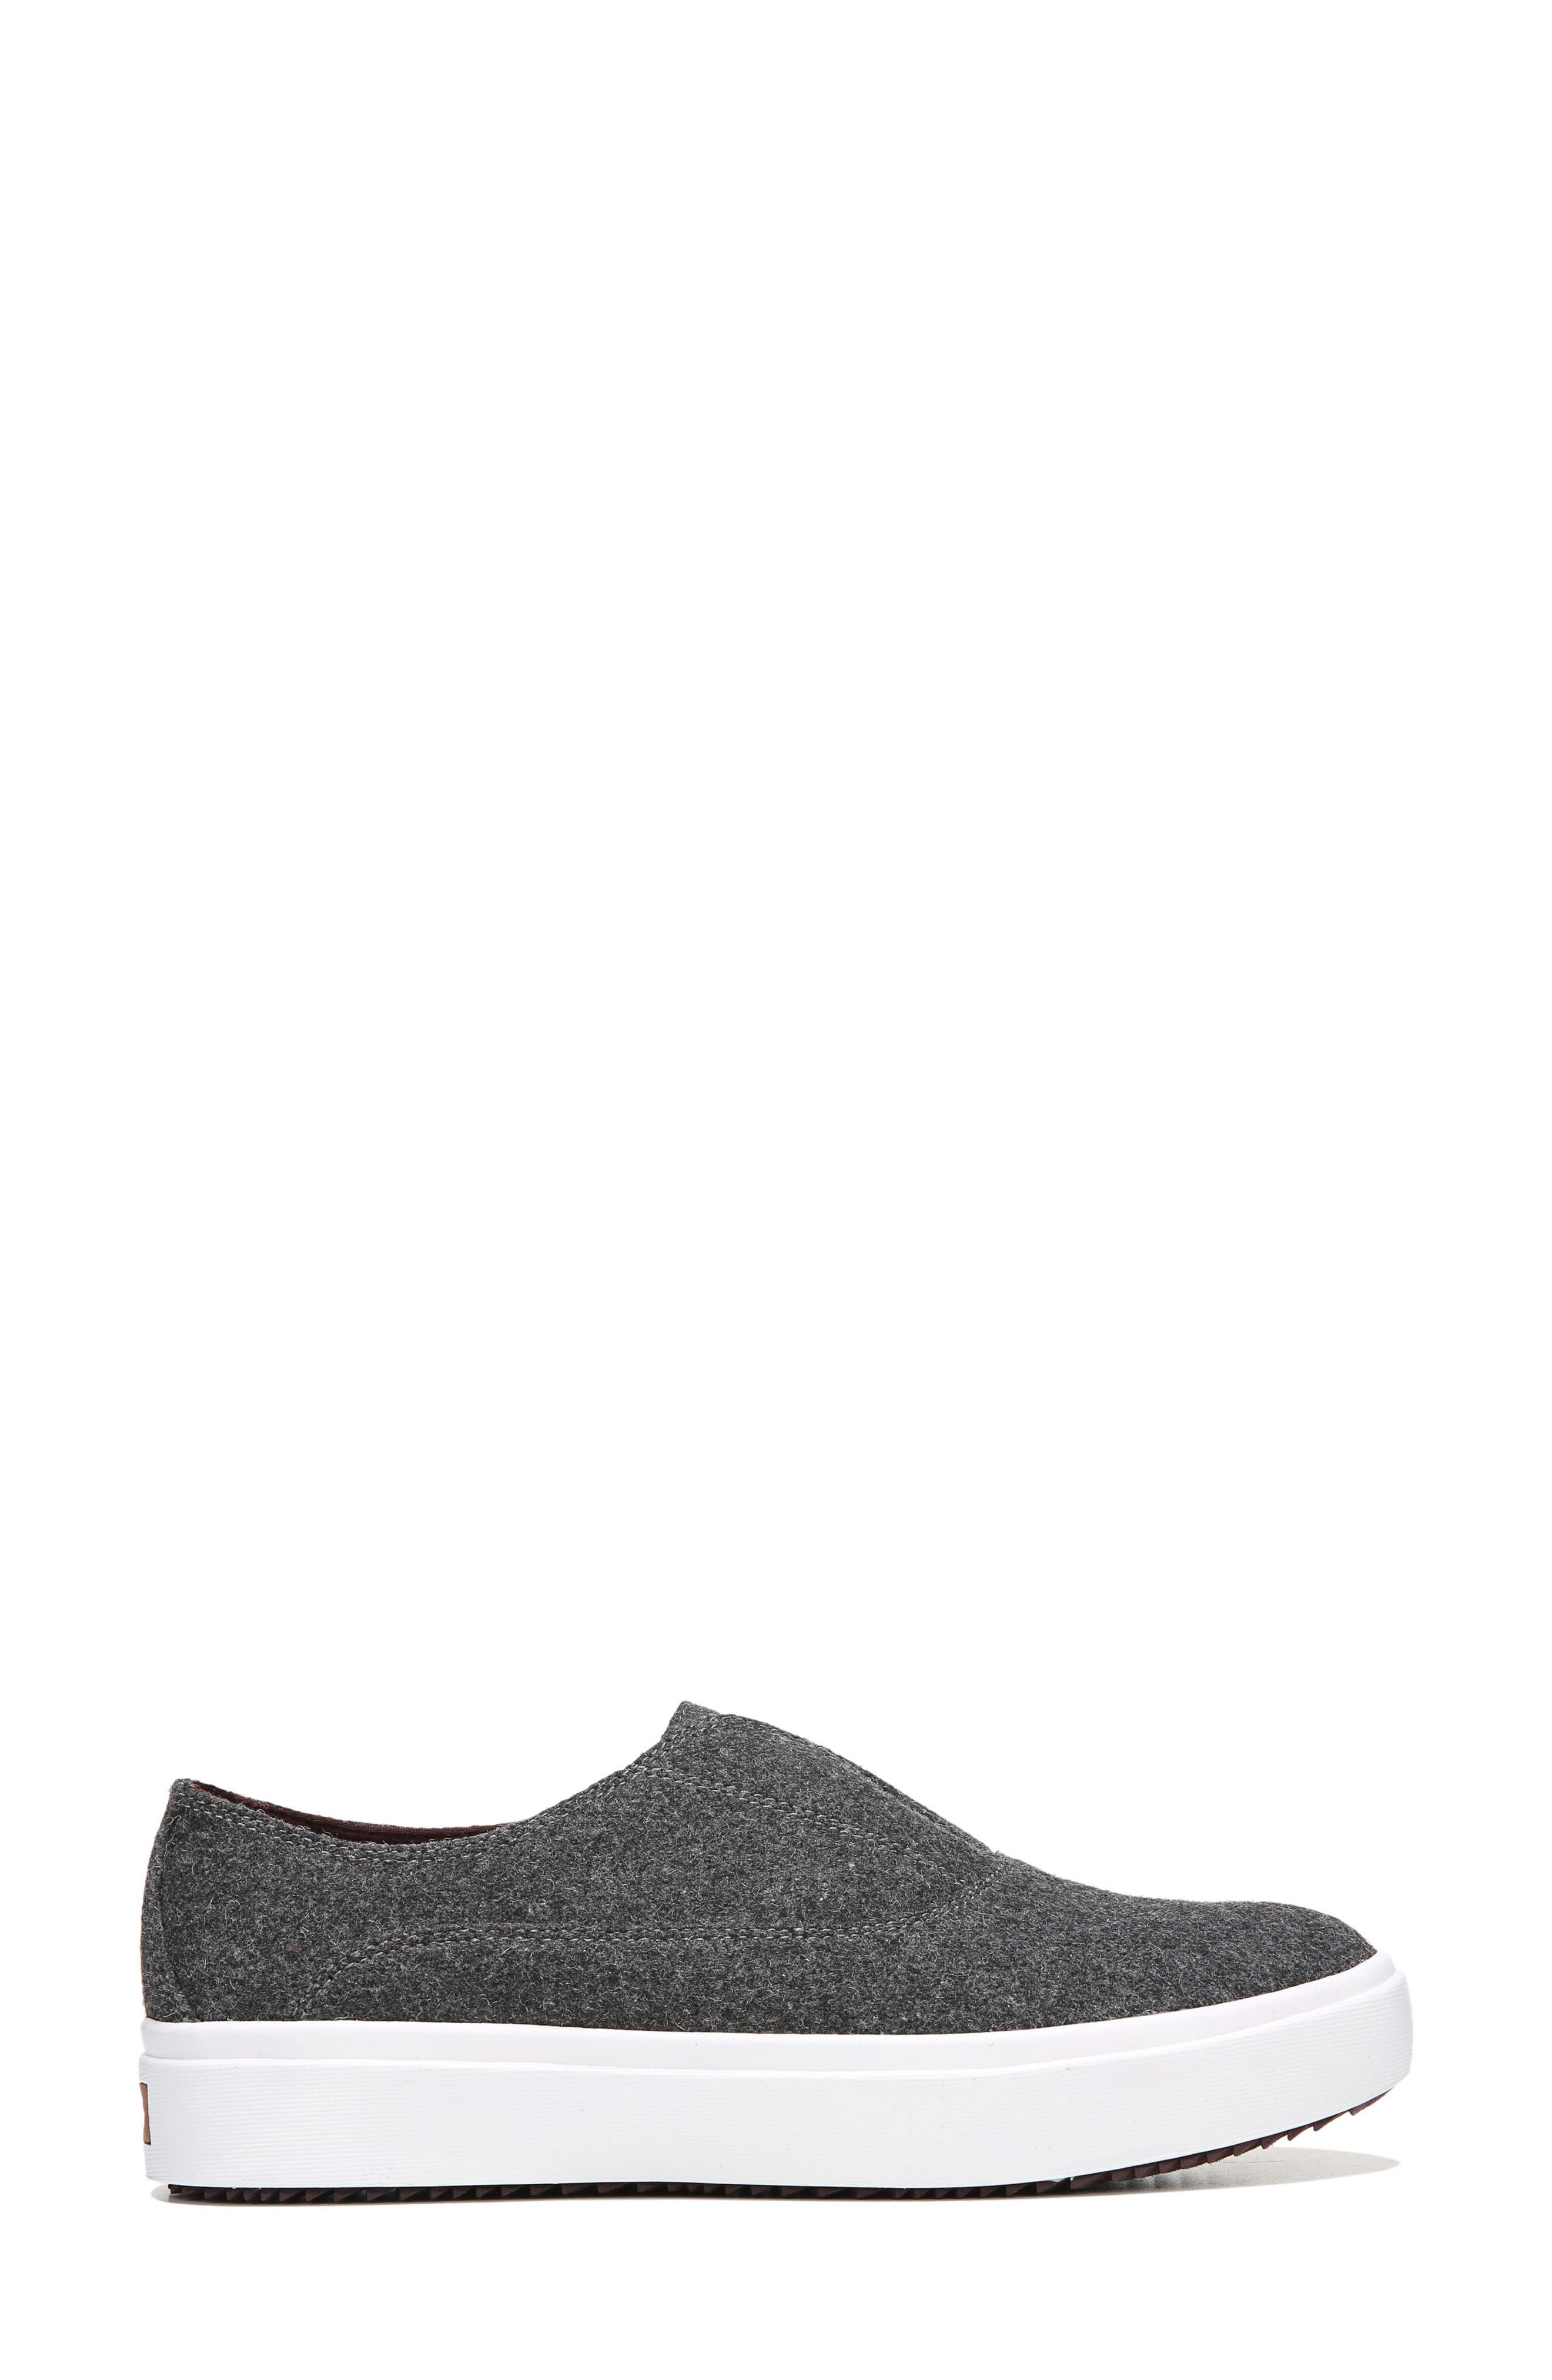 Brey Slip-On Sneaker,                             Alternate thumbnail 3, color,                             Charcoal Fabric